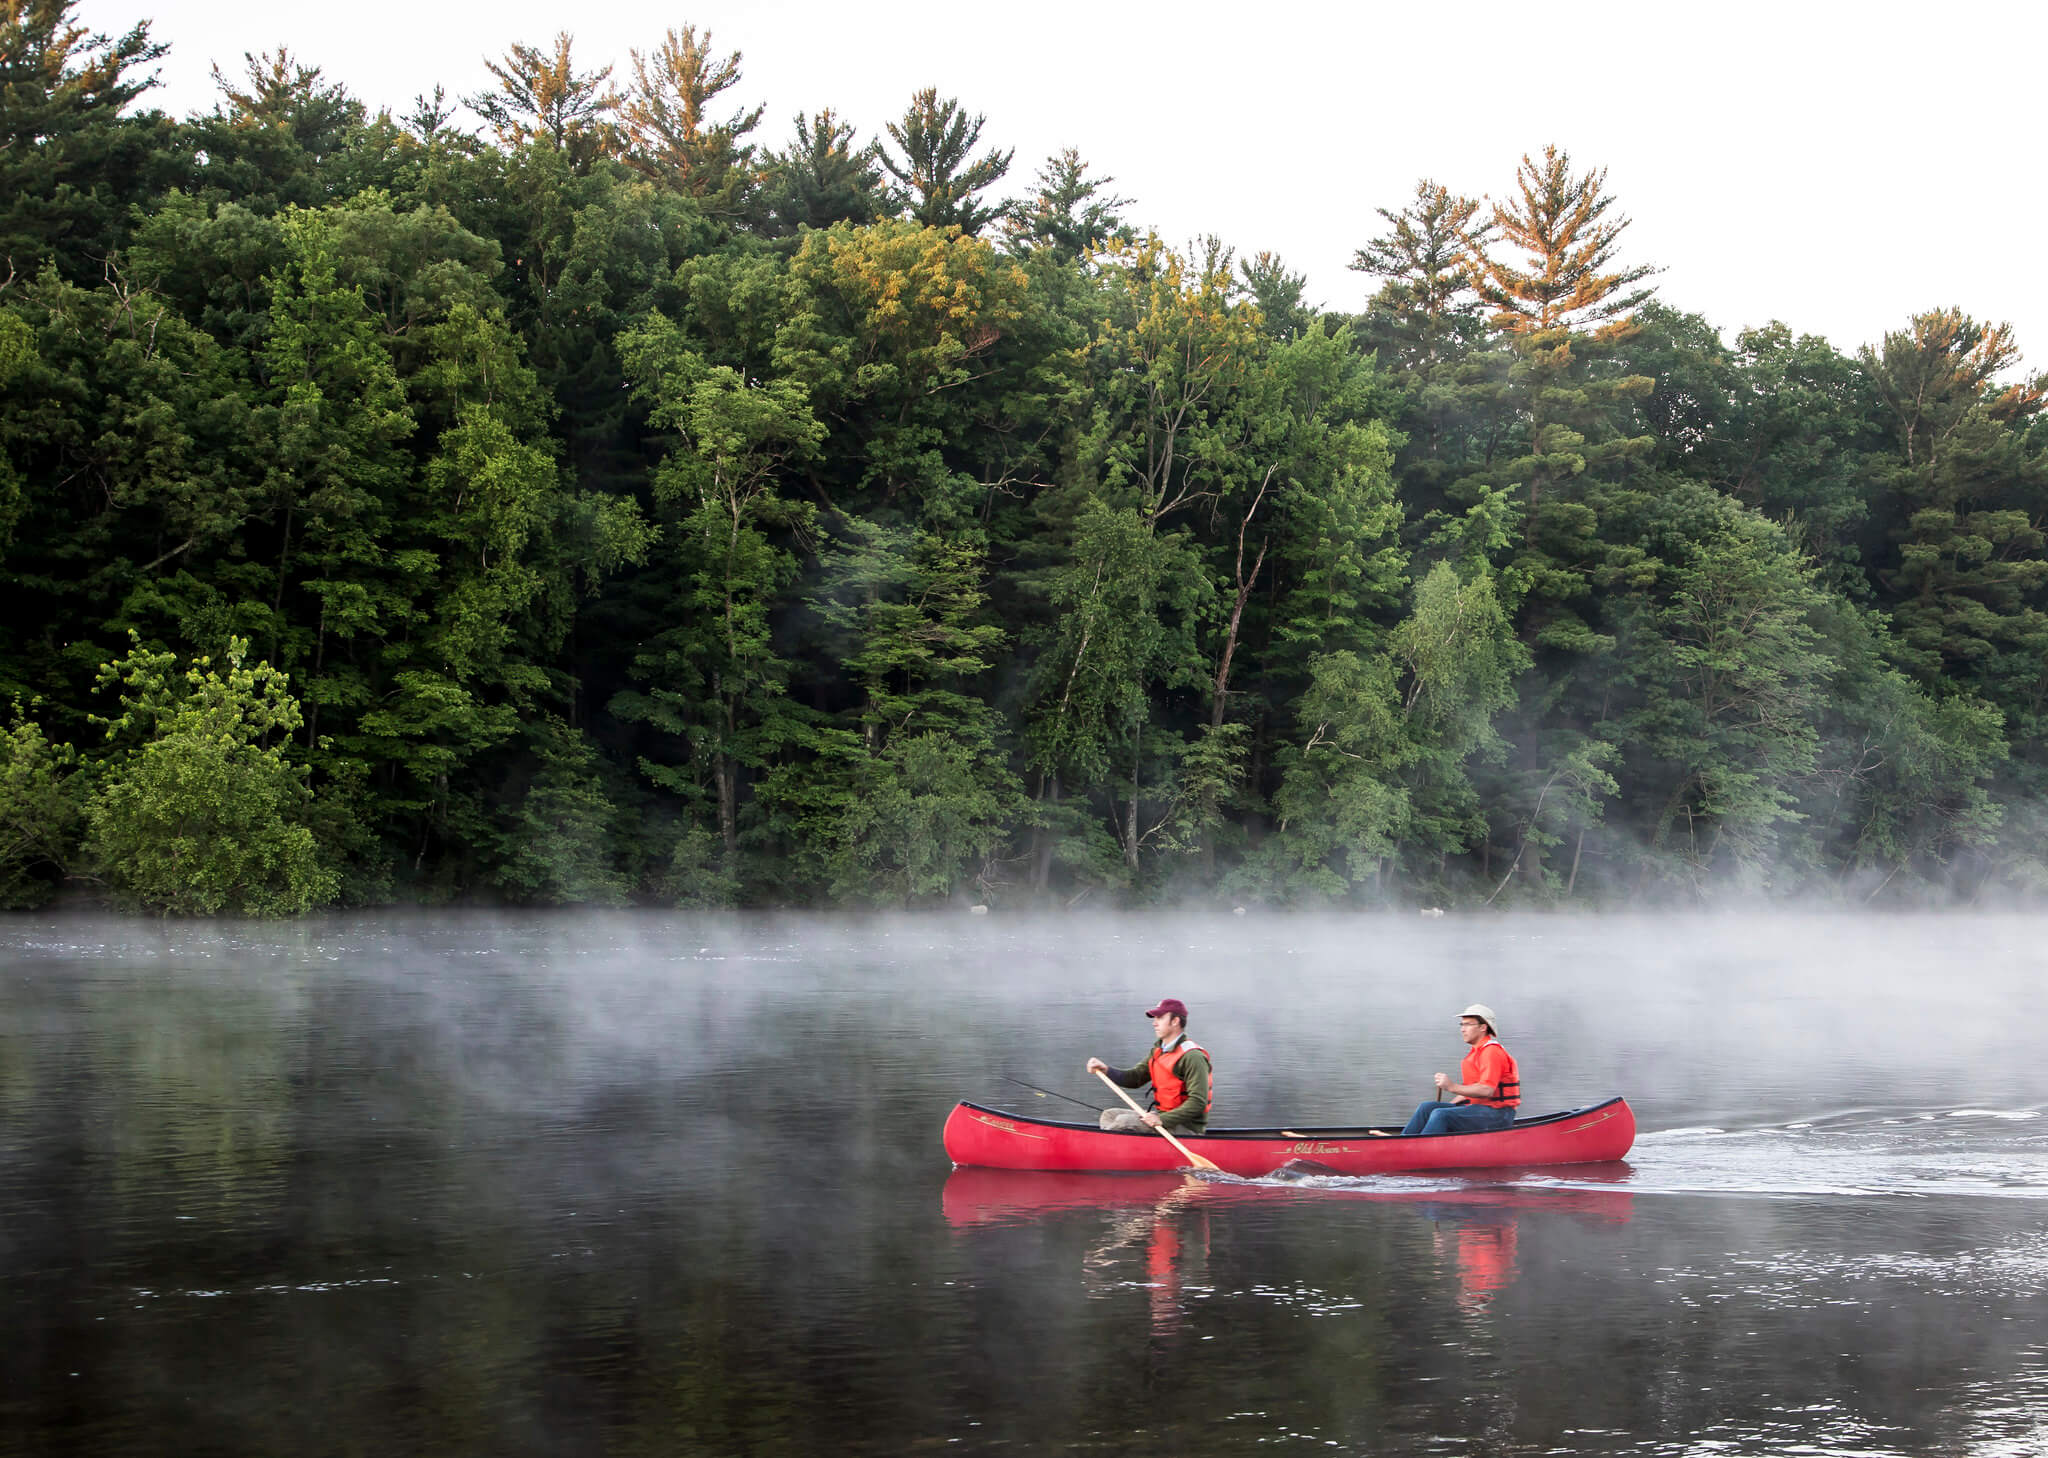 Two people paddling in a red canoe on the misty Wisconsin River, with a background of pine trees. The Wisconsin River has benefitted from the Knowles-Nelson Stewardship Program.